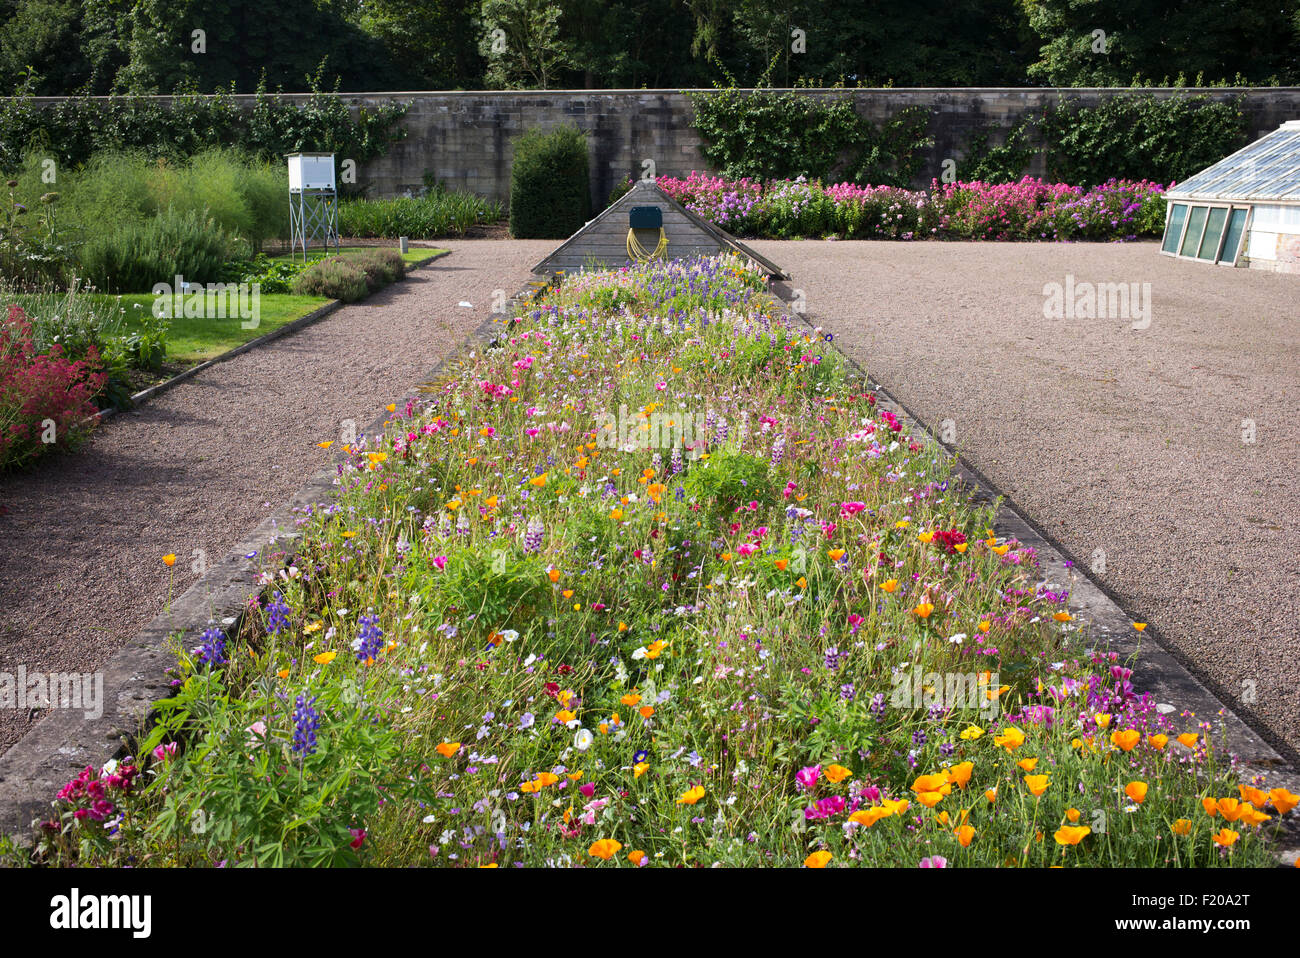 Wildflower bed inside the walled garden at Floors Castle walled gardens Kelso, Scotland - Stock Image